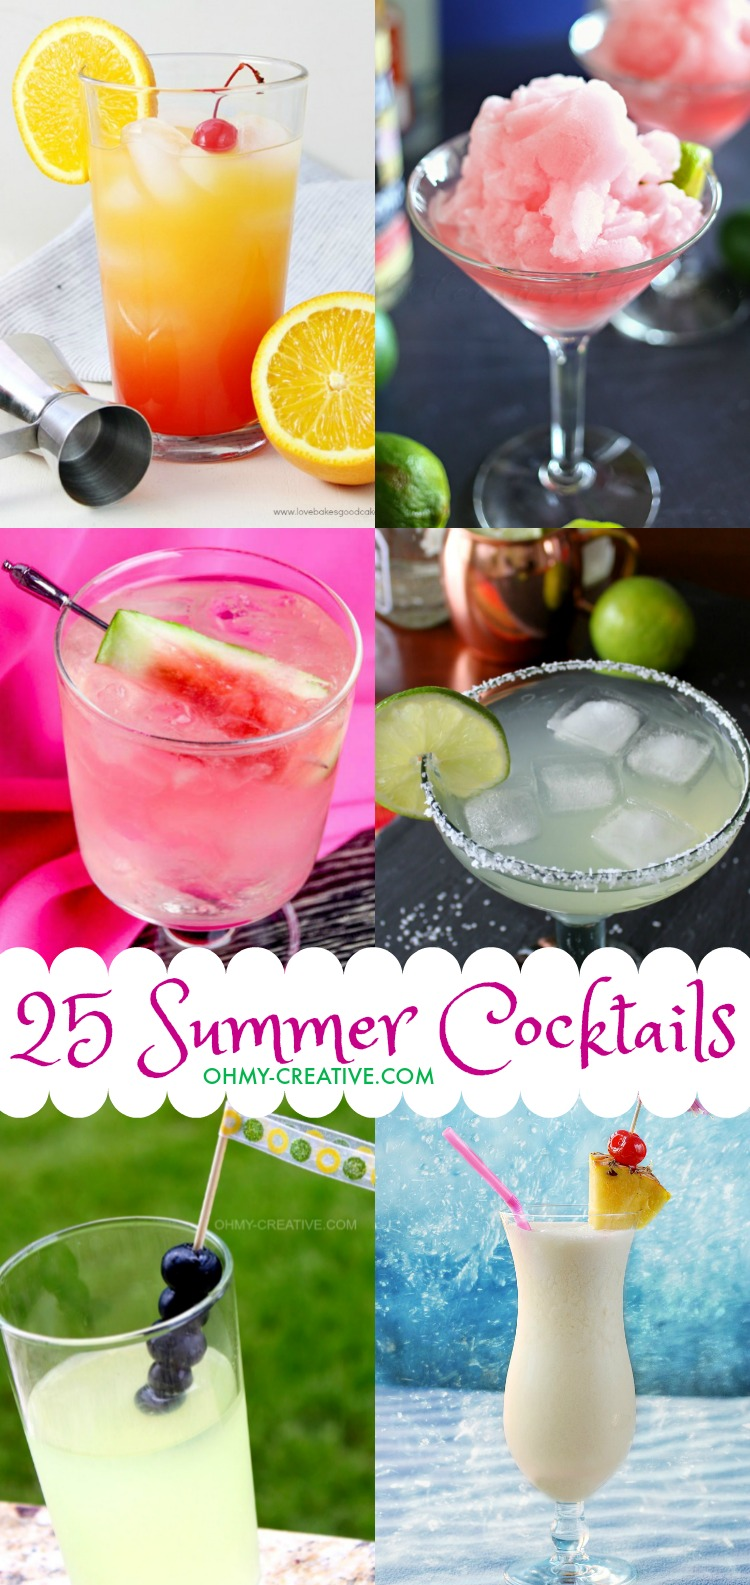 Cool down summers sizzling days with these 25 Fun Summer Cocktails! Perfect summer drinks for parties, picnics or sipping on the patio!